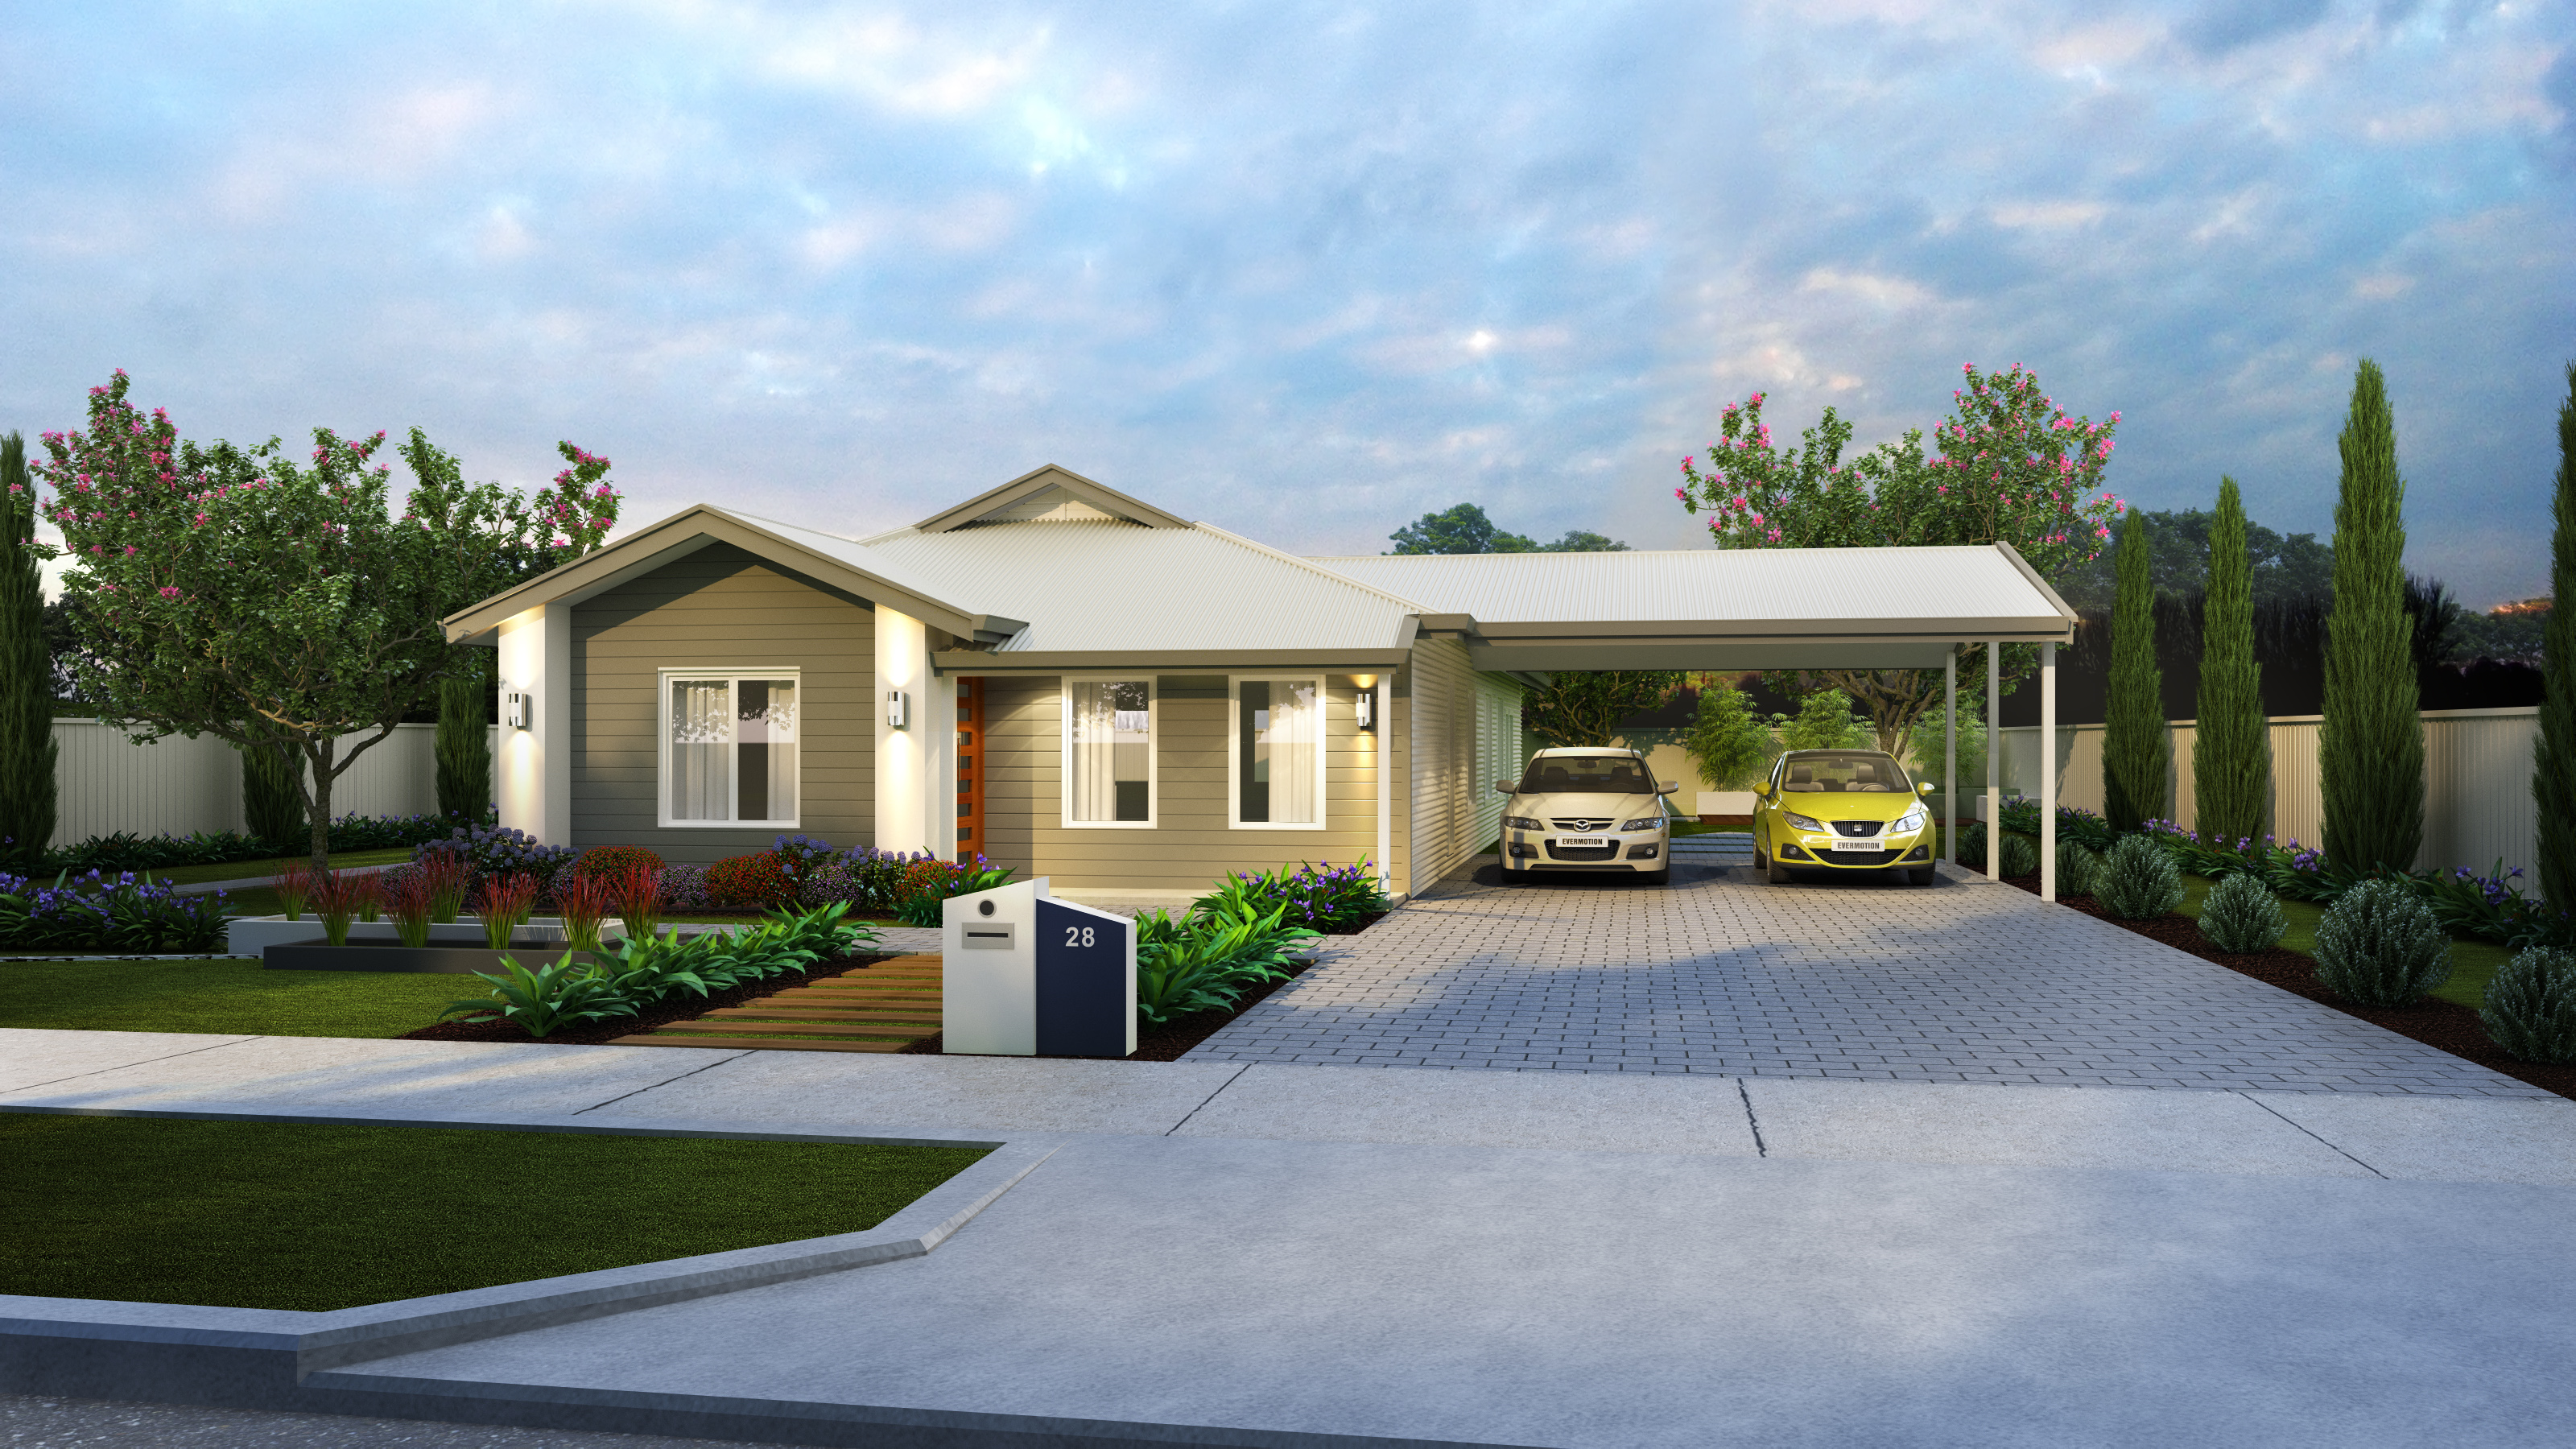 The Glades home design with two cars parked in the driveway under the carport and a large walkway and nice garden | Modular Homes WA